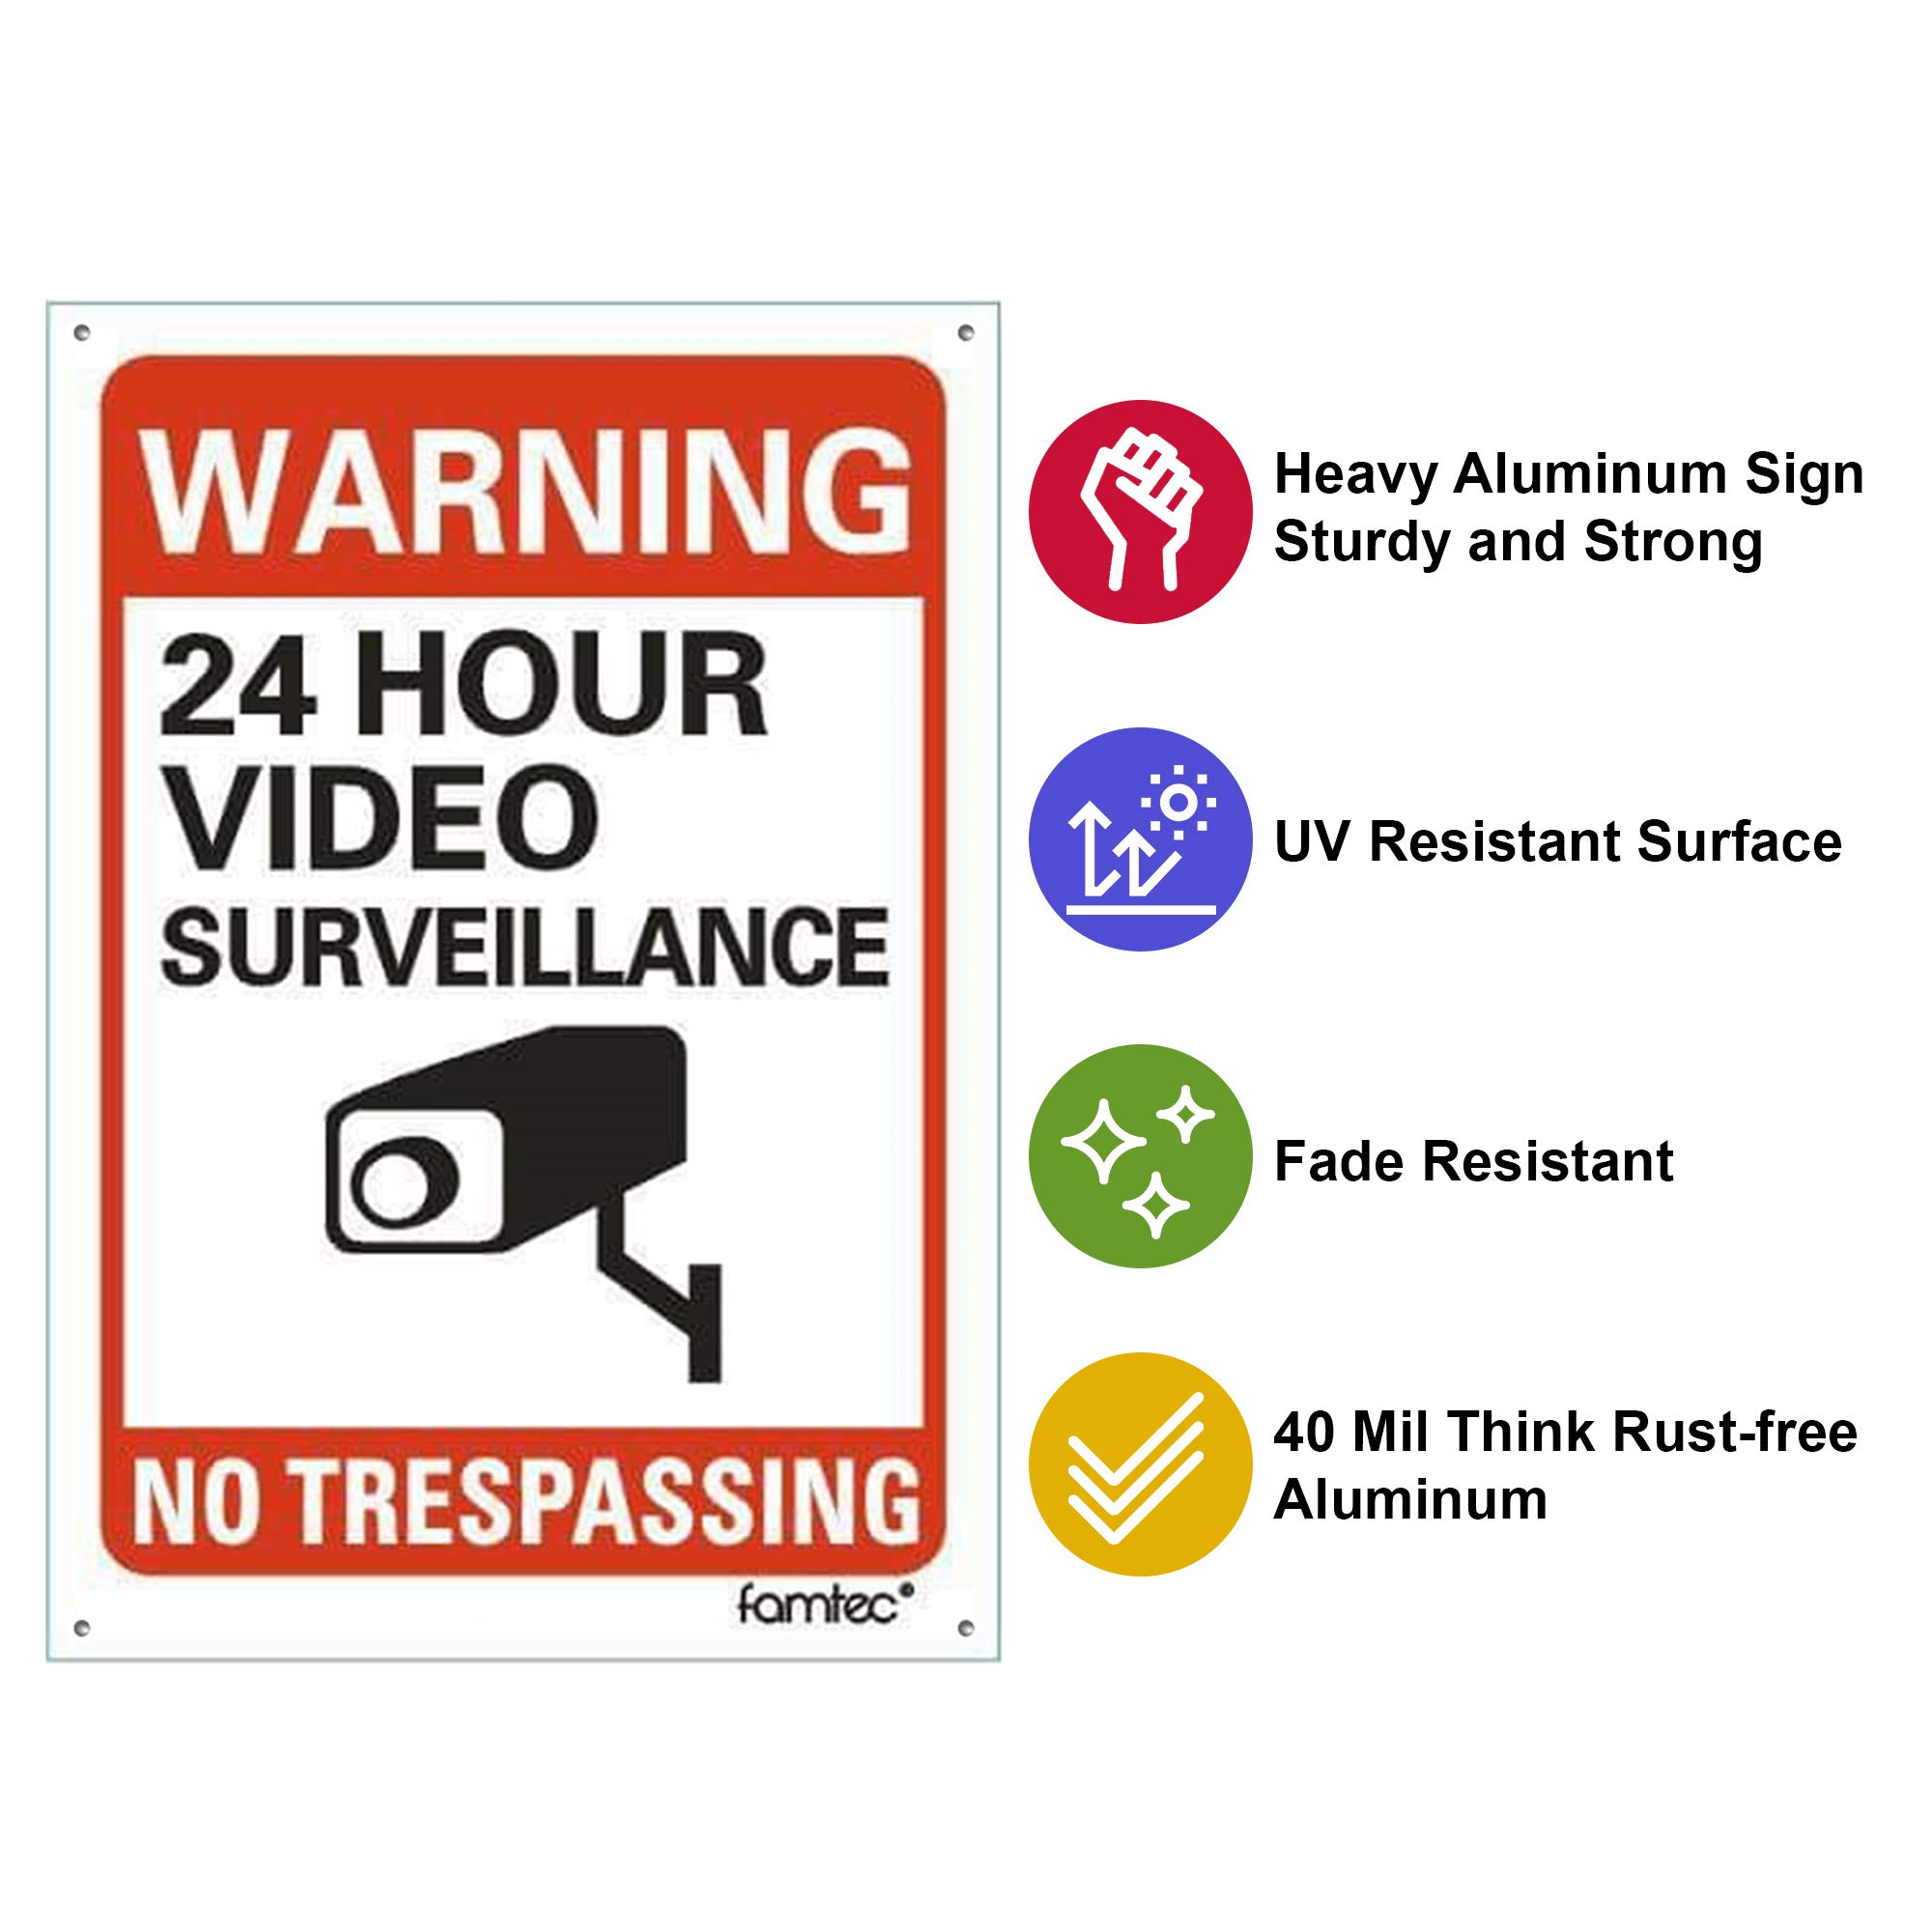 Famtec Video Surveillance Sign Outdoor Warning Sign | 7''x 10'' Aluminum | Indoor Outdoor | Home Business CCTV Security Camera | Waterproof UV Protected | Red | 7x10, Red | Reflective | 4 Pack by Famtec (Image #2)